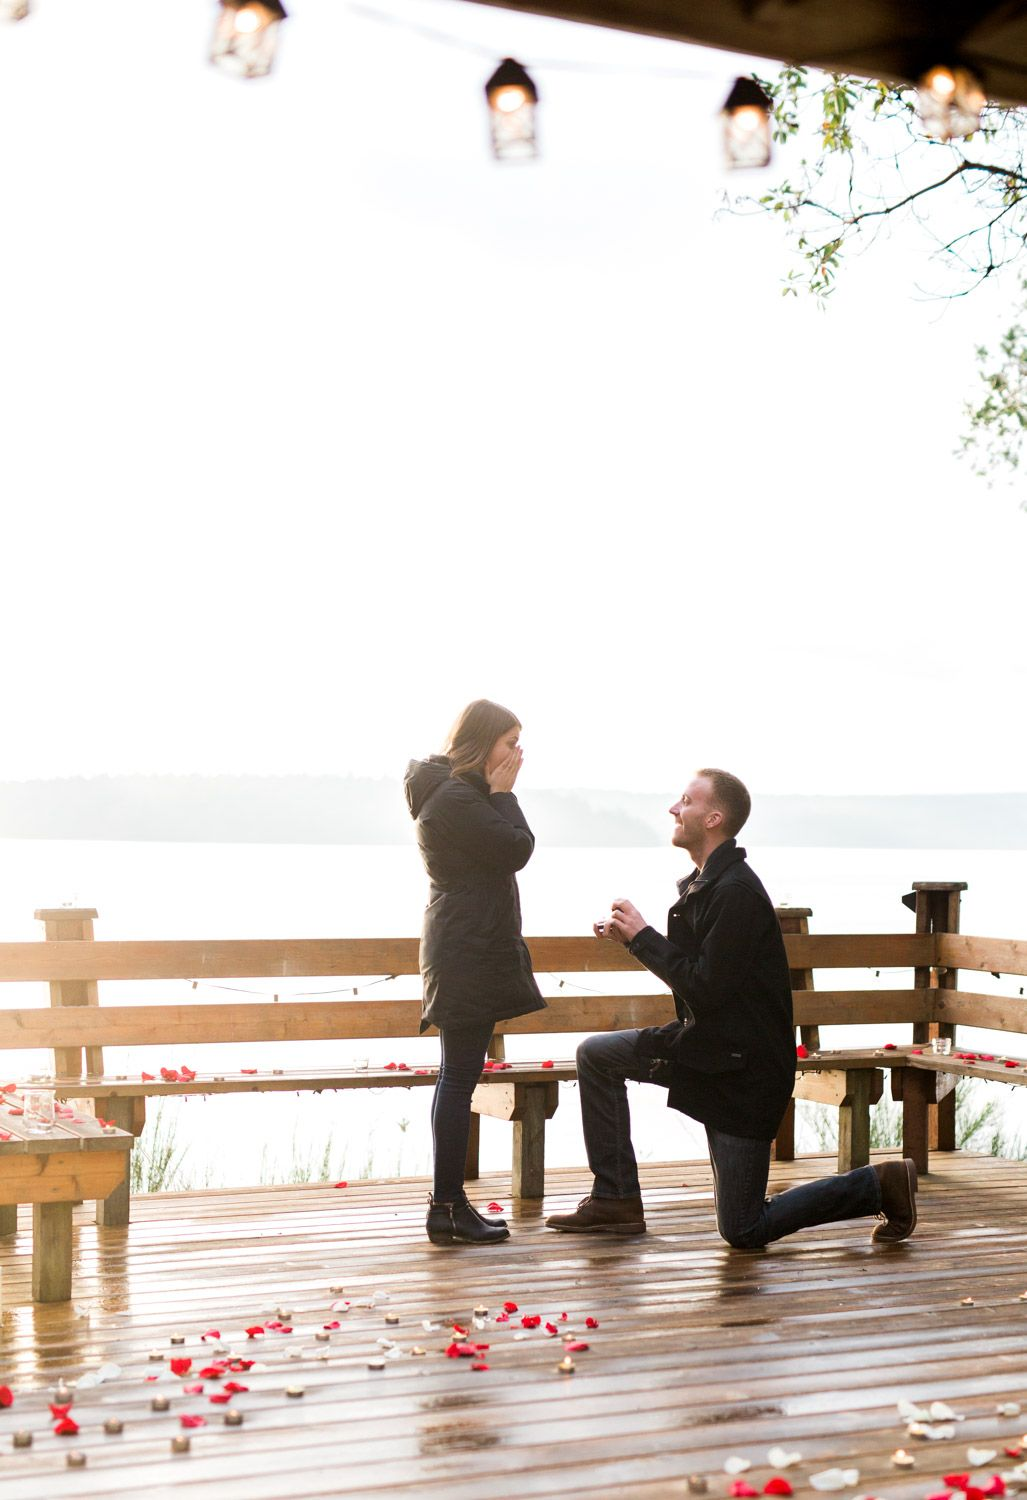 Surprise Proposal Hood Canal | Pacific Northwest Surprise Engagement | Down on one knee | Rose Petals and Candle Surprise Proposal | PNW Engagement | She Said Yes | Mastin Labs Fuji 400-7.jpg